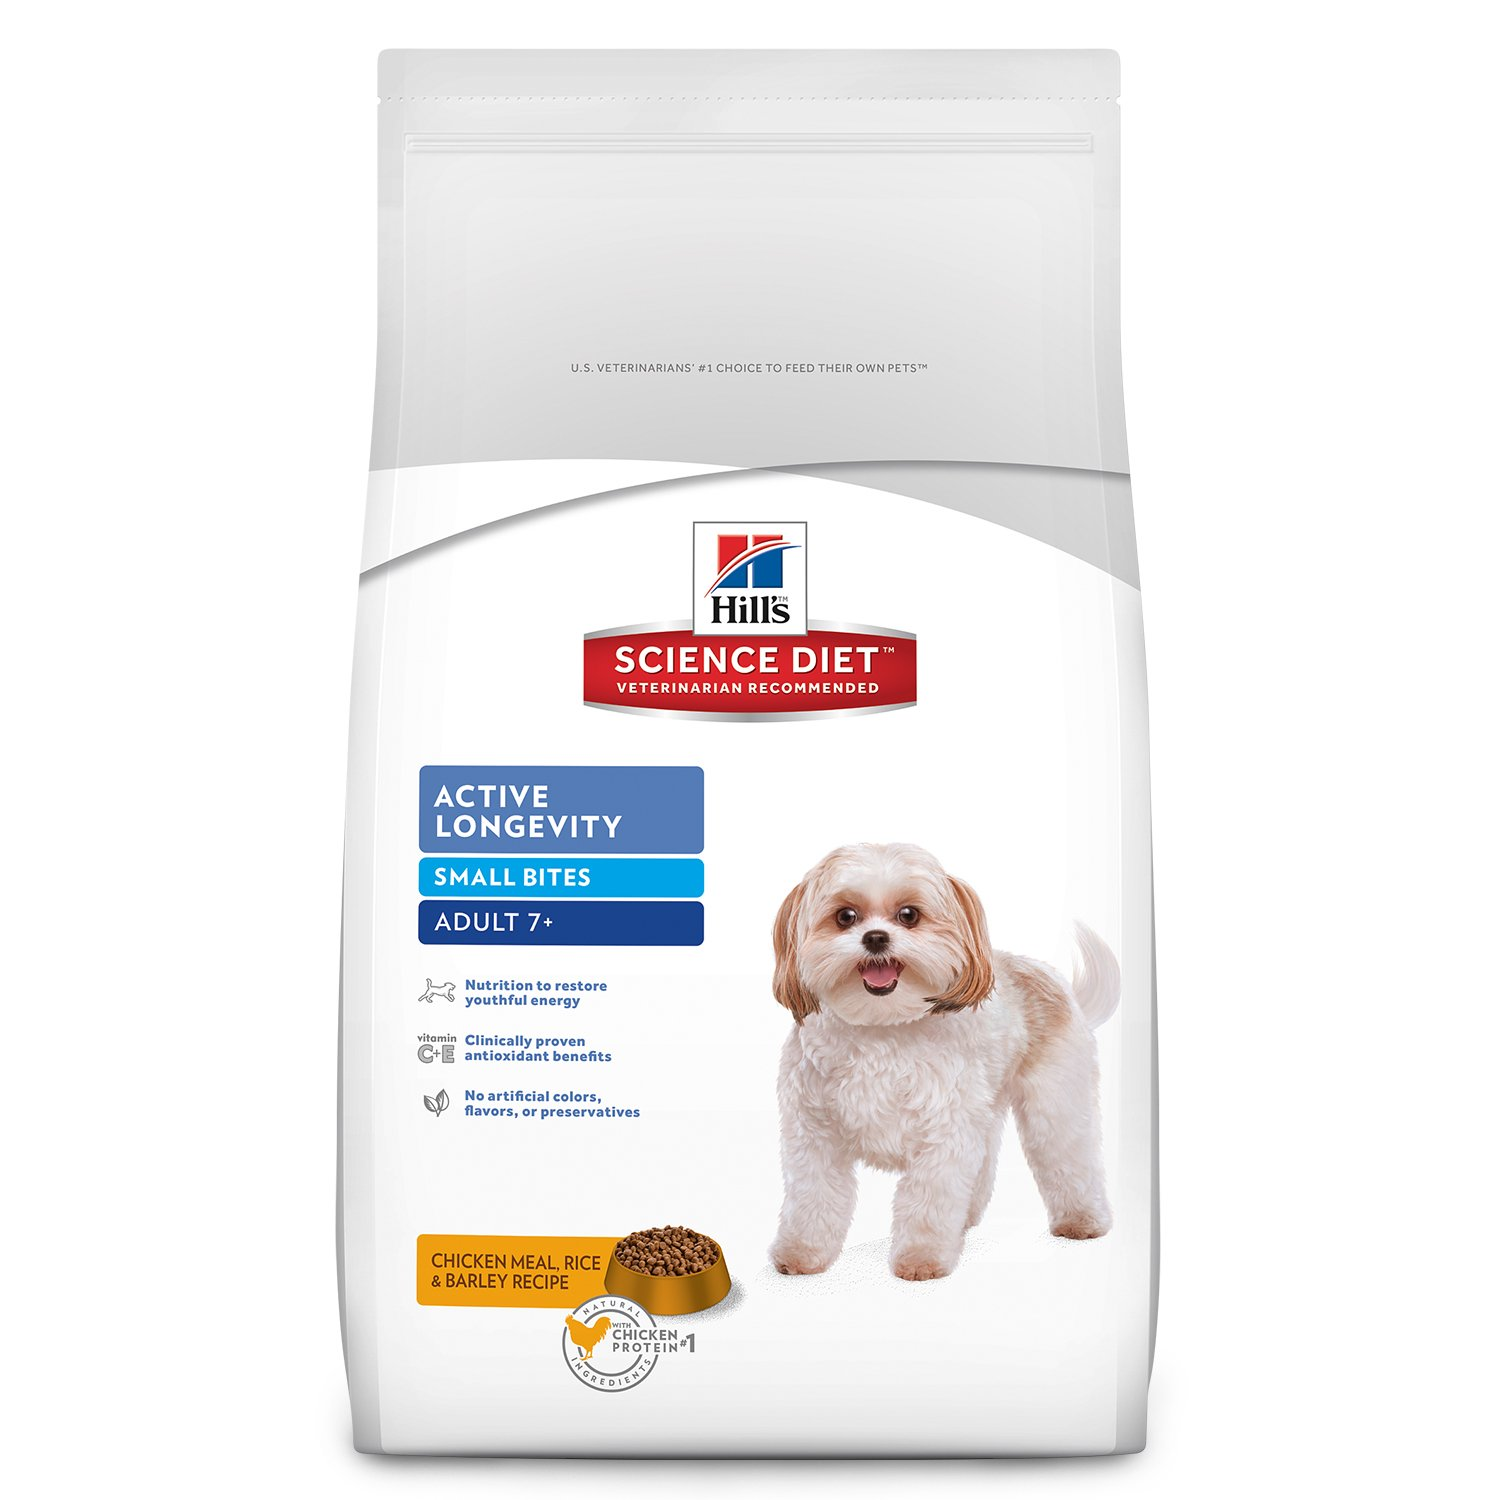 diet science senior bites dog food adult hill dry active chicken breed sensitive longevity stomach skin hills toy barley meal